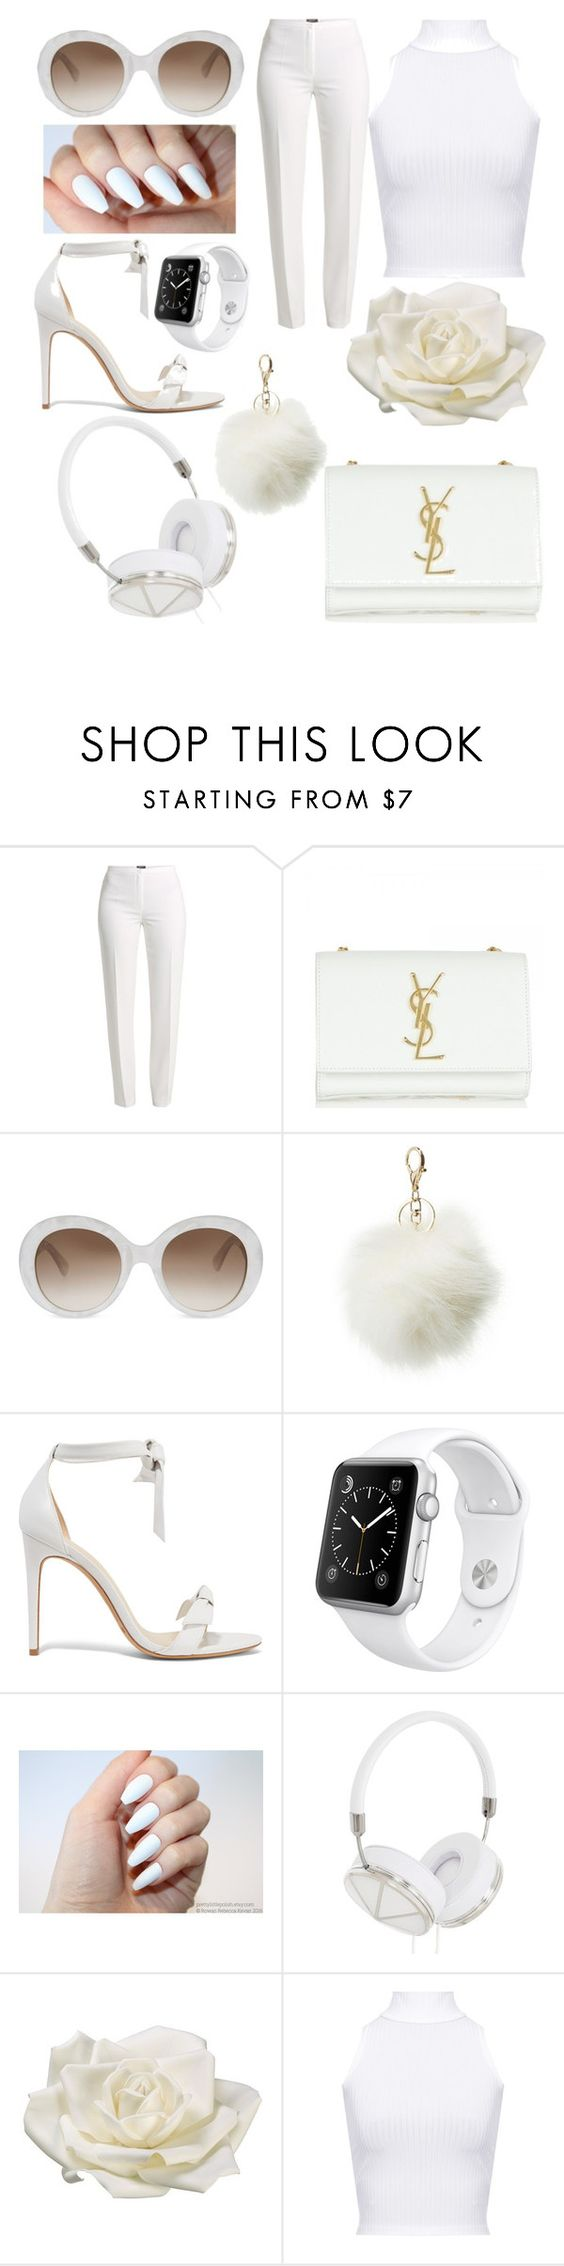 """""""21 baby"""" by ladeej ❤ liked on Polyvore featuring Basler, Yves Saint Laurent, Gucci, Charlotte Russe, Alexandre Birman, Apple, Frends, Allstate Floral and WearAll"""